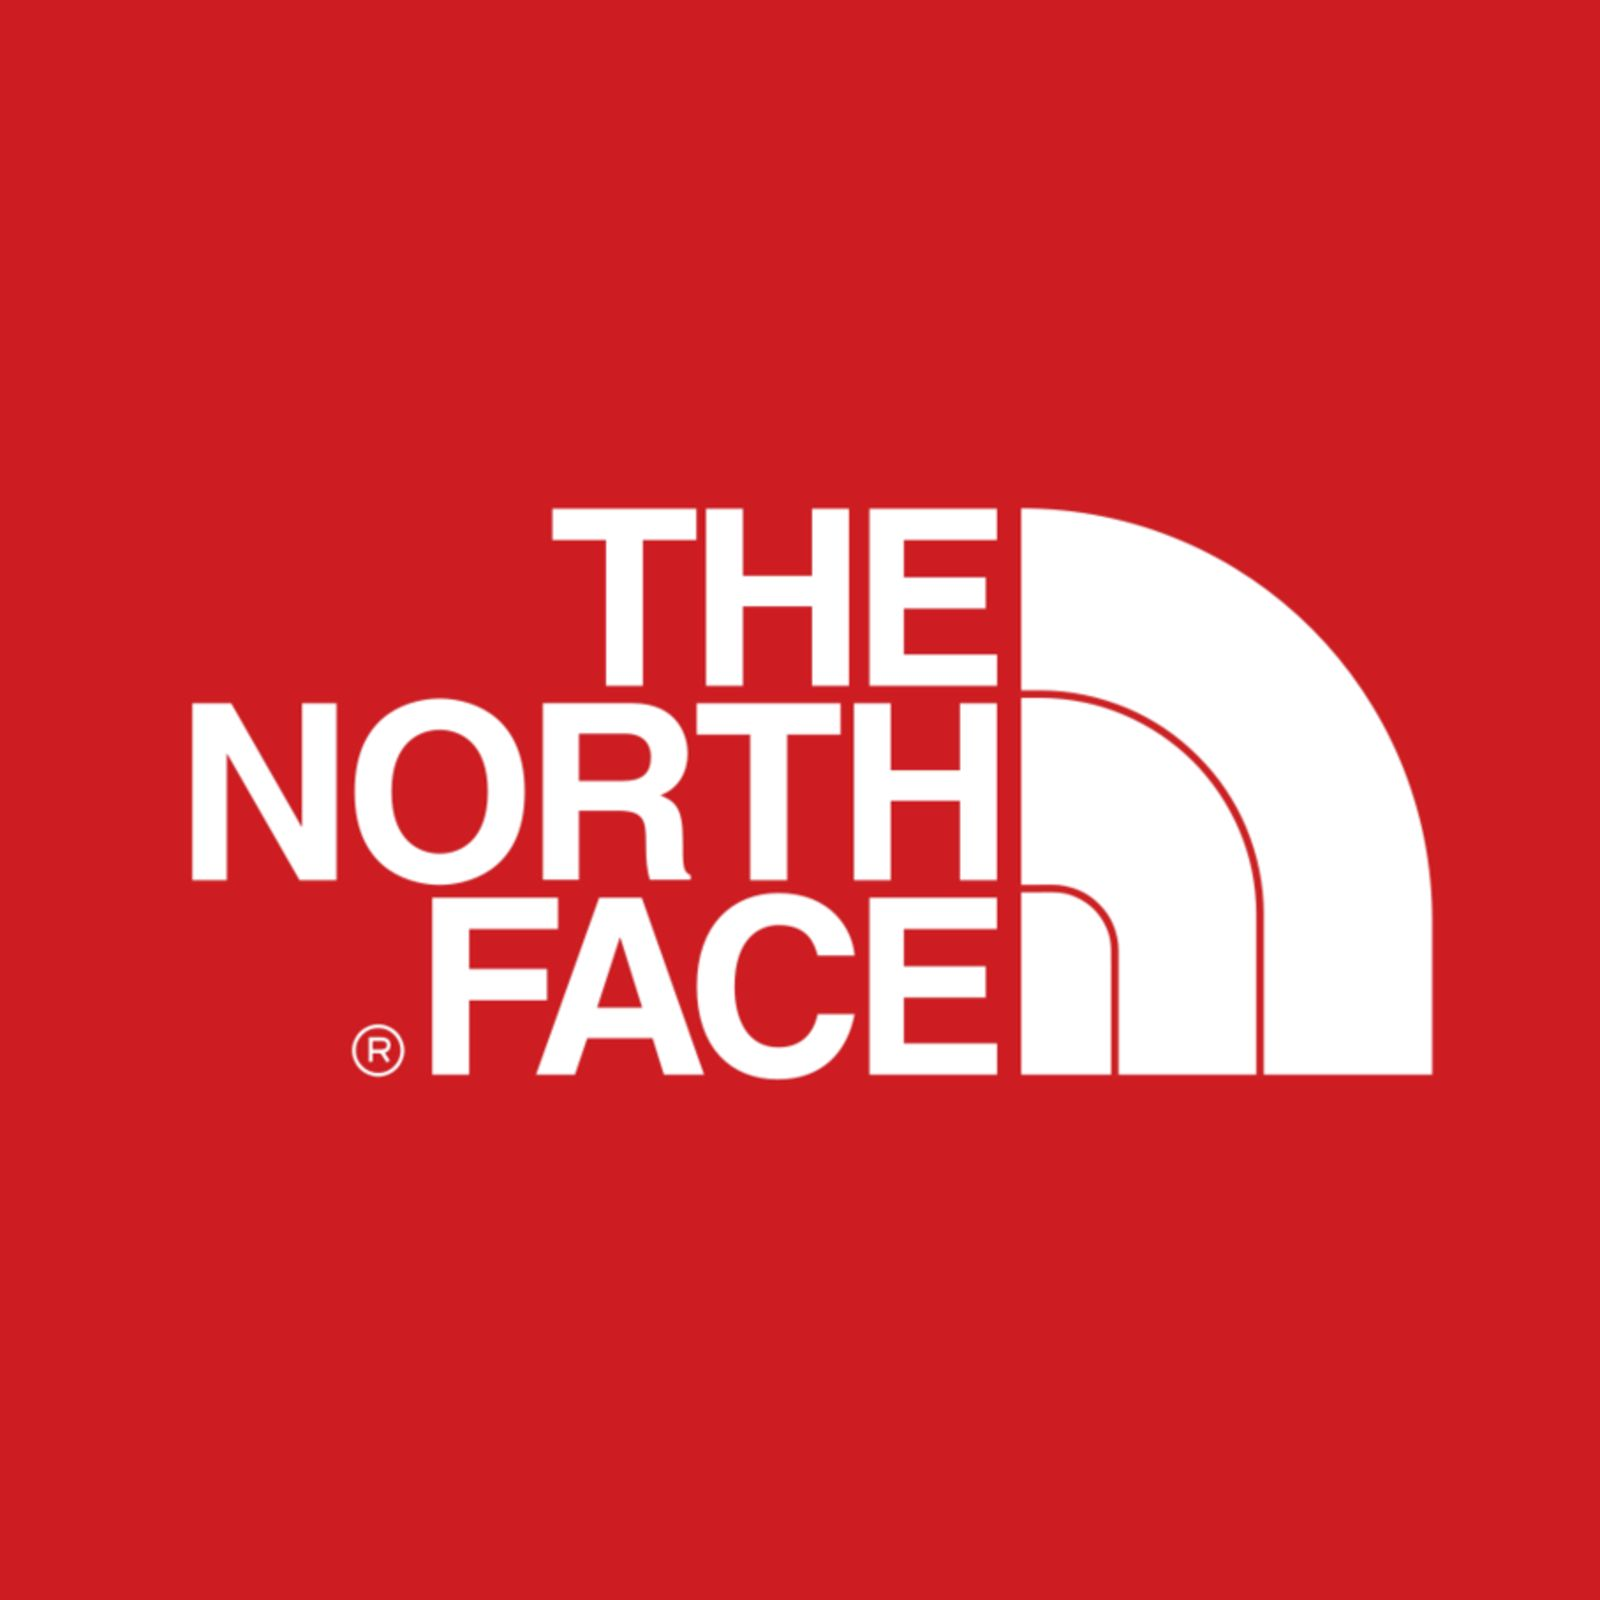 THE NORTH FACE (Bild 1)